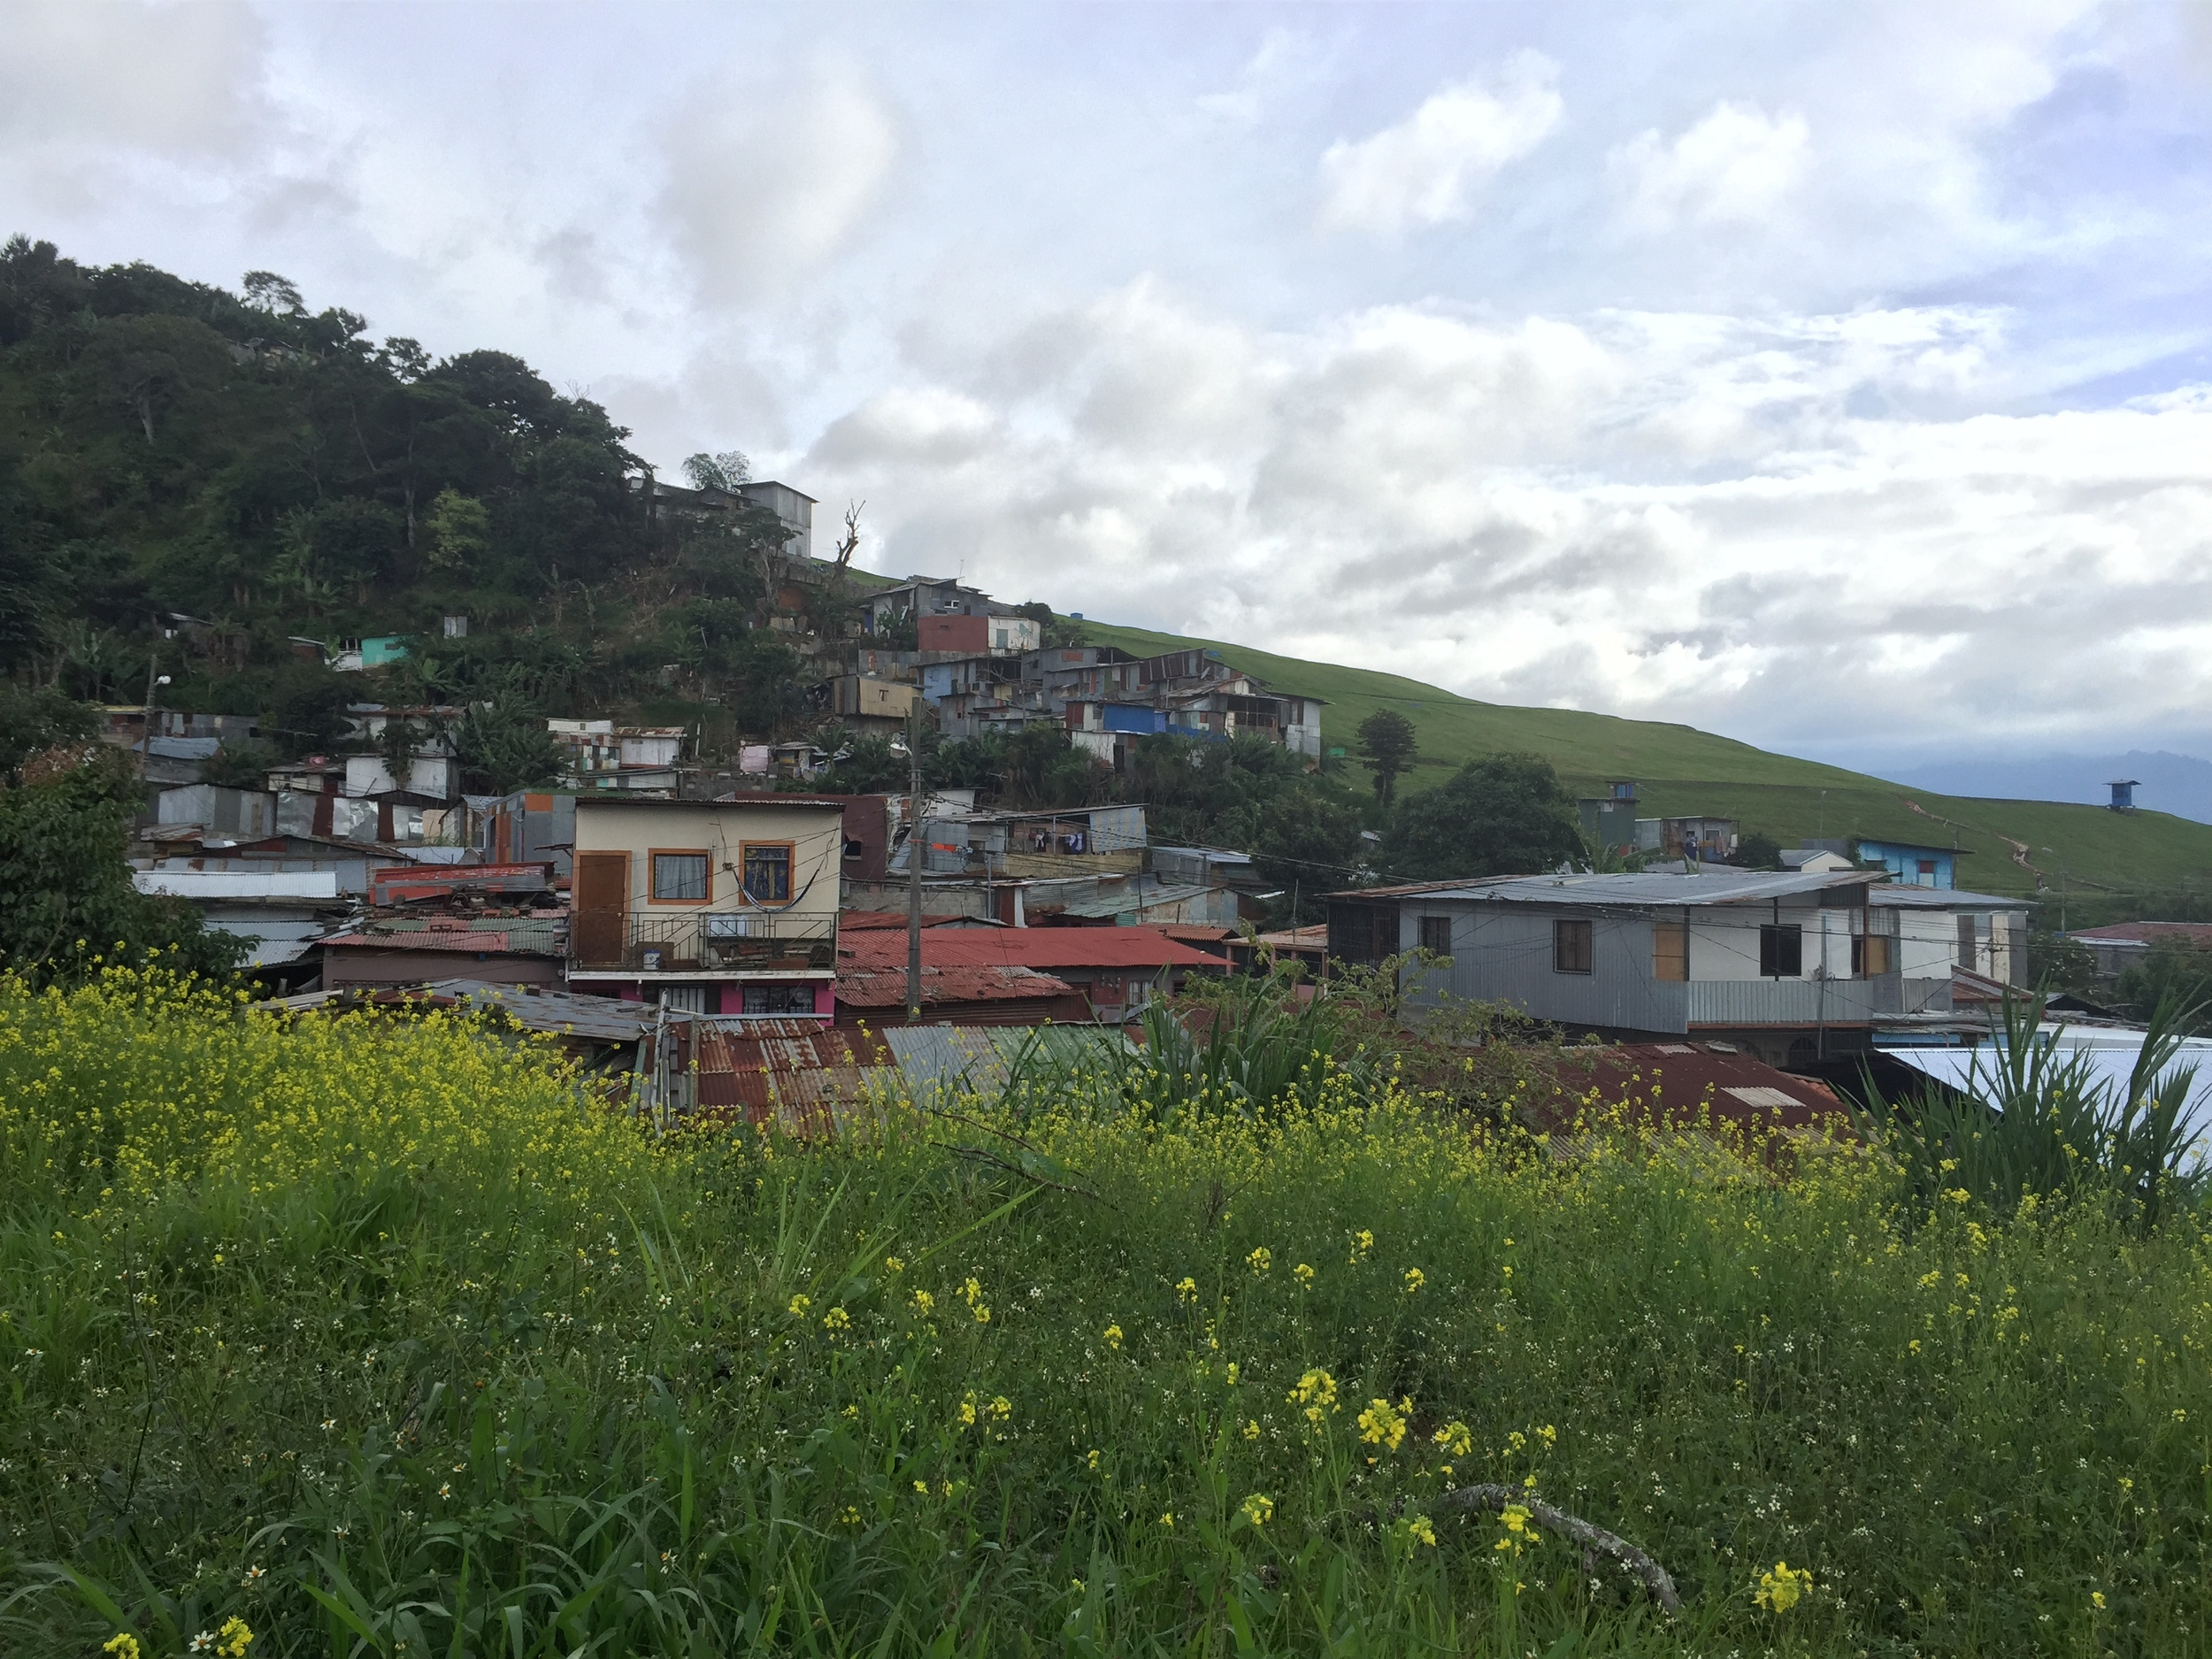 Run down shacks on a hill in Tirrases